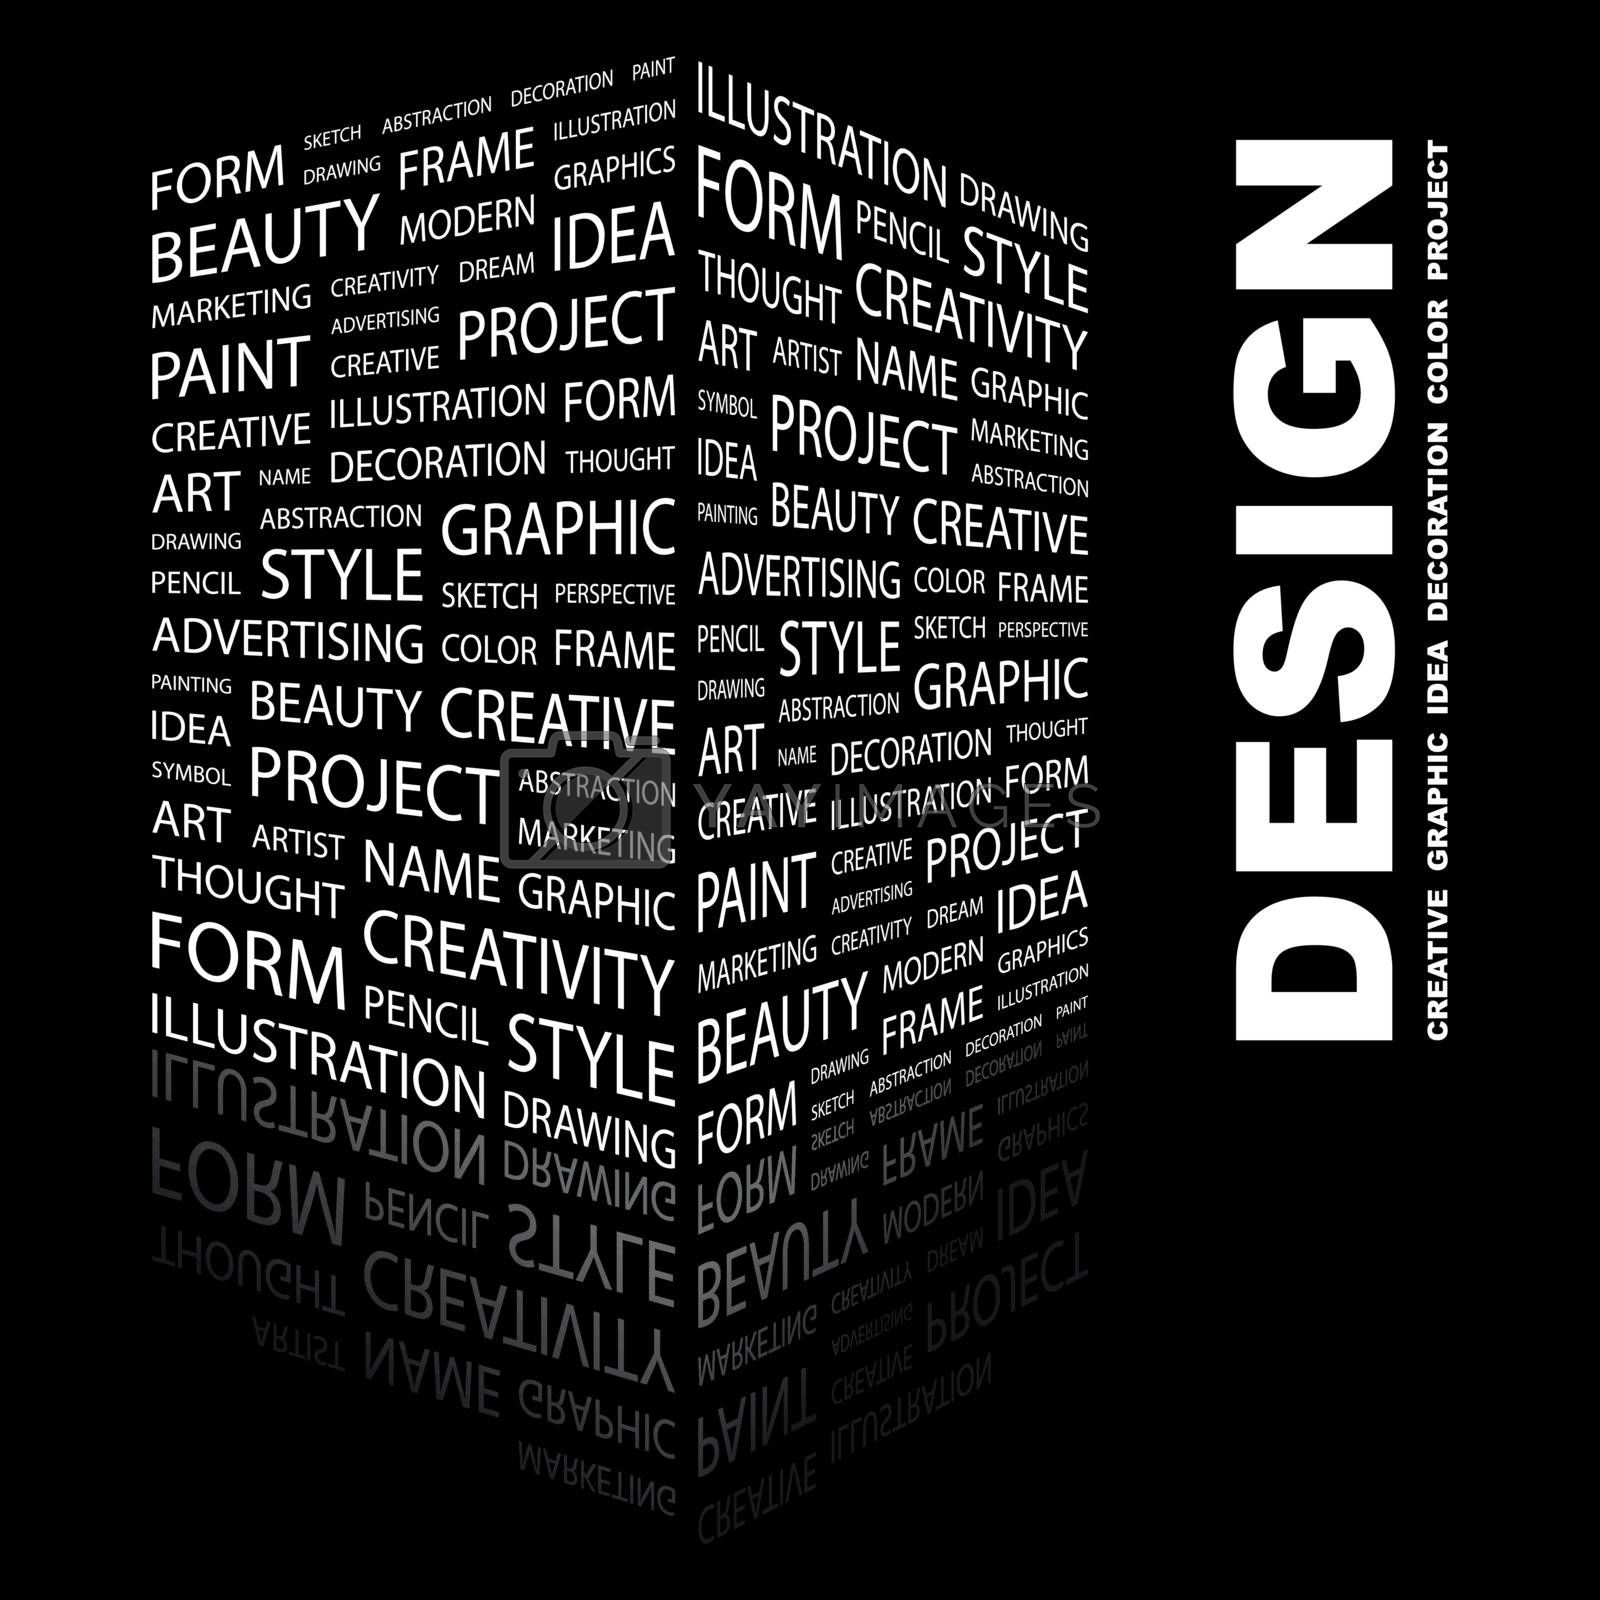 DESIGN. Concept illustration. Graphic tag collection. Wordcloud collage.